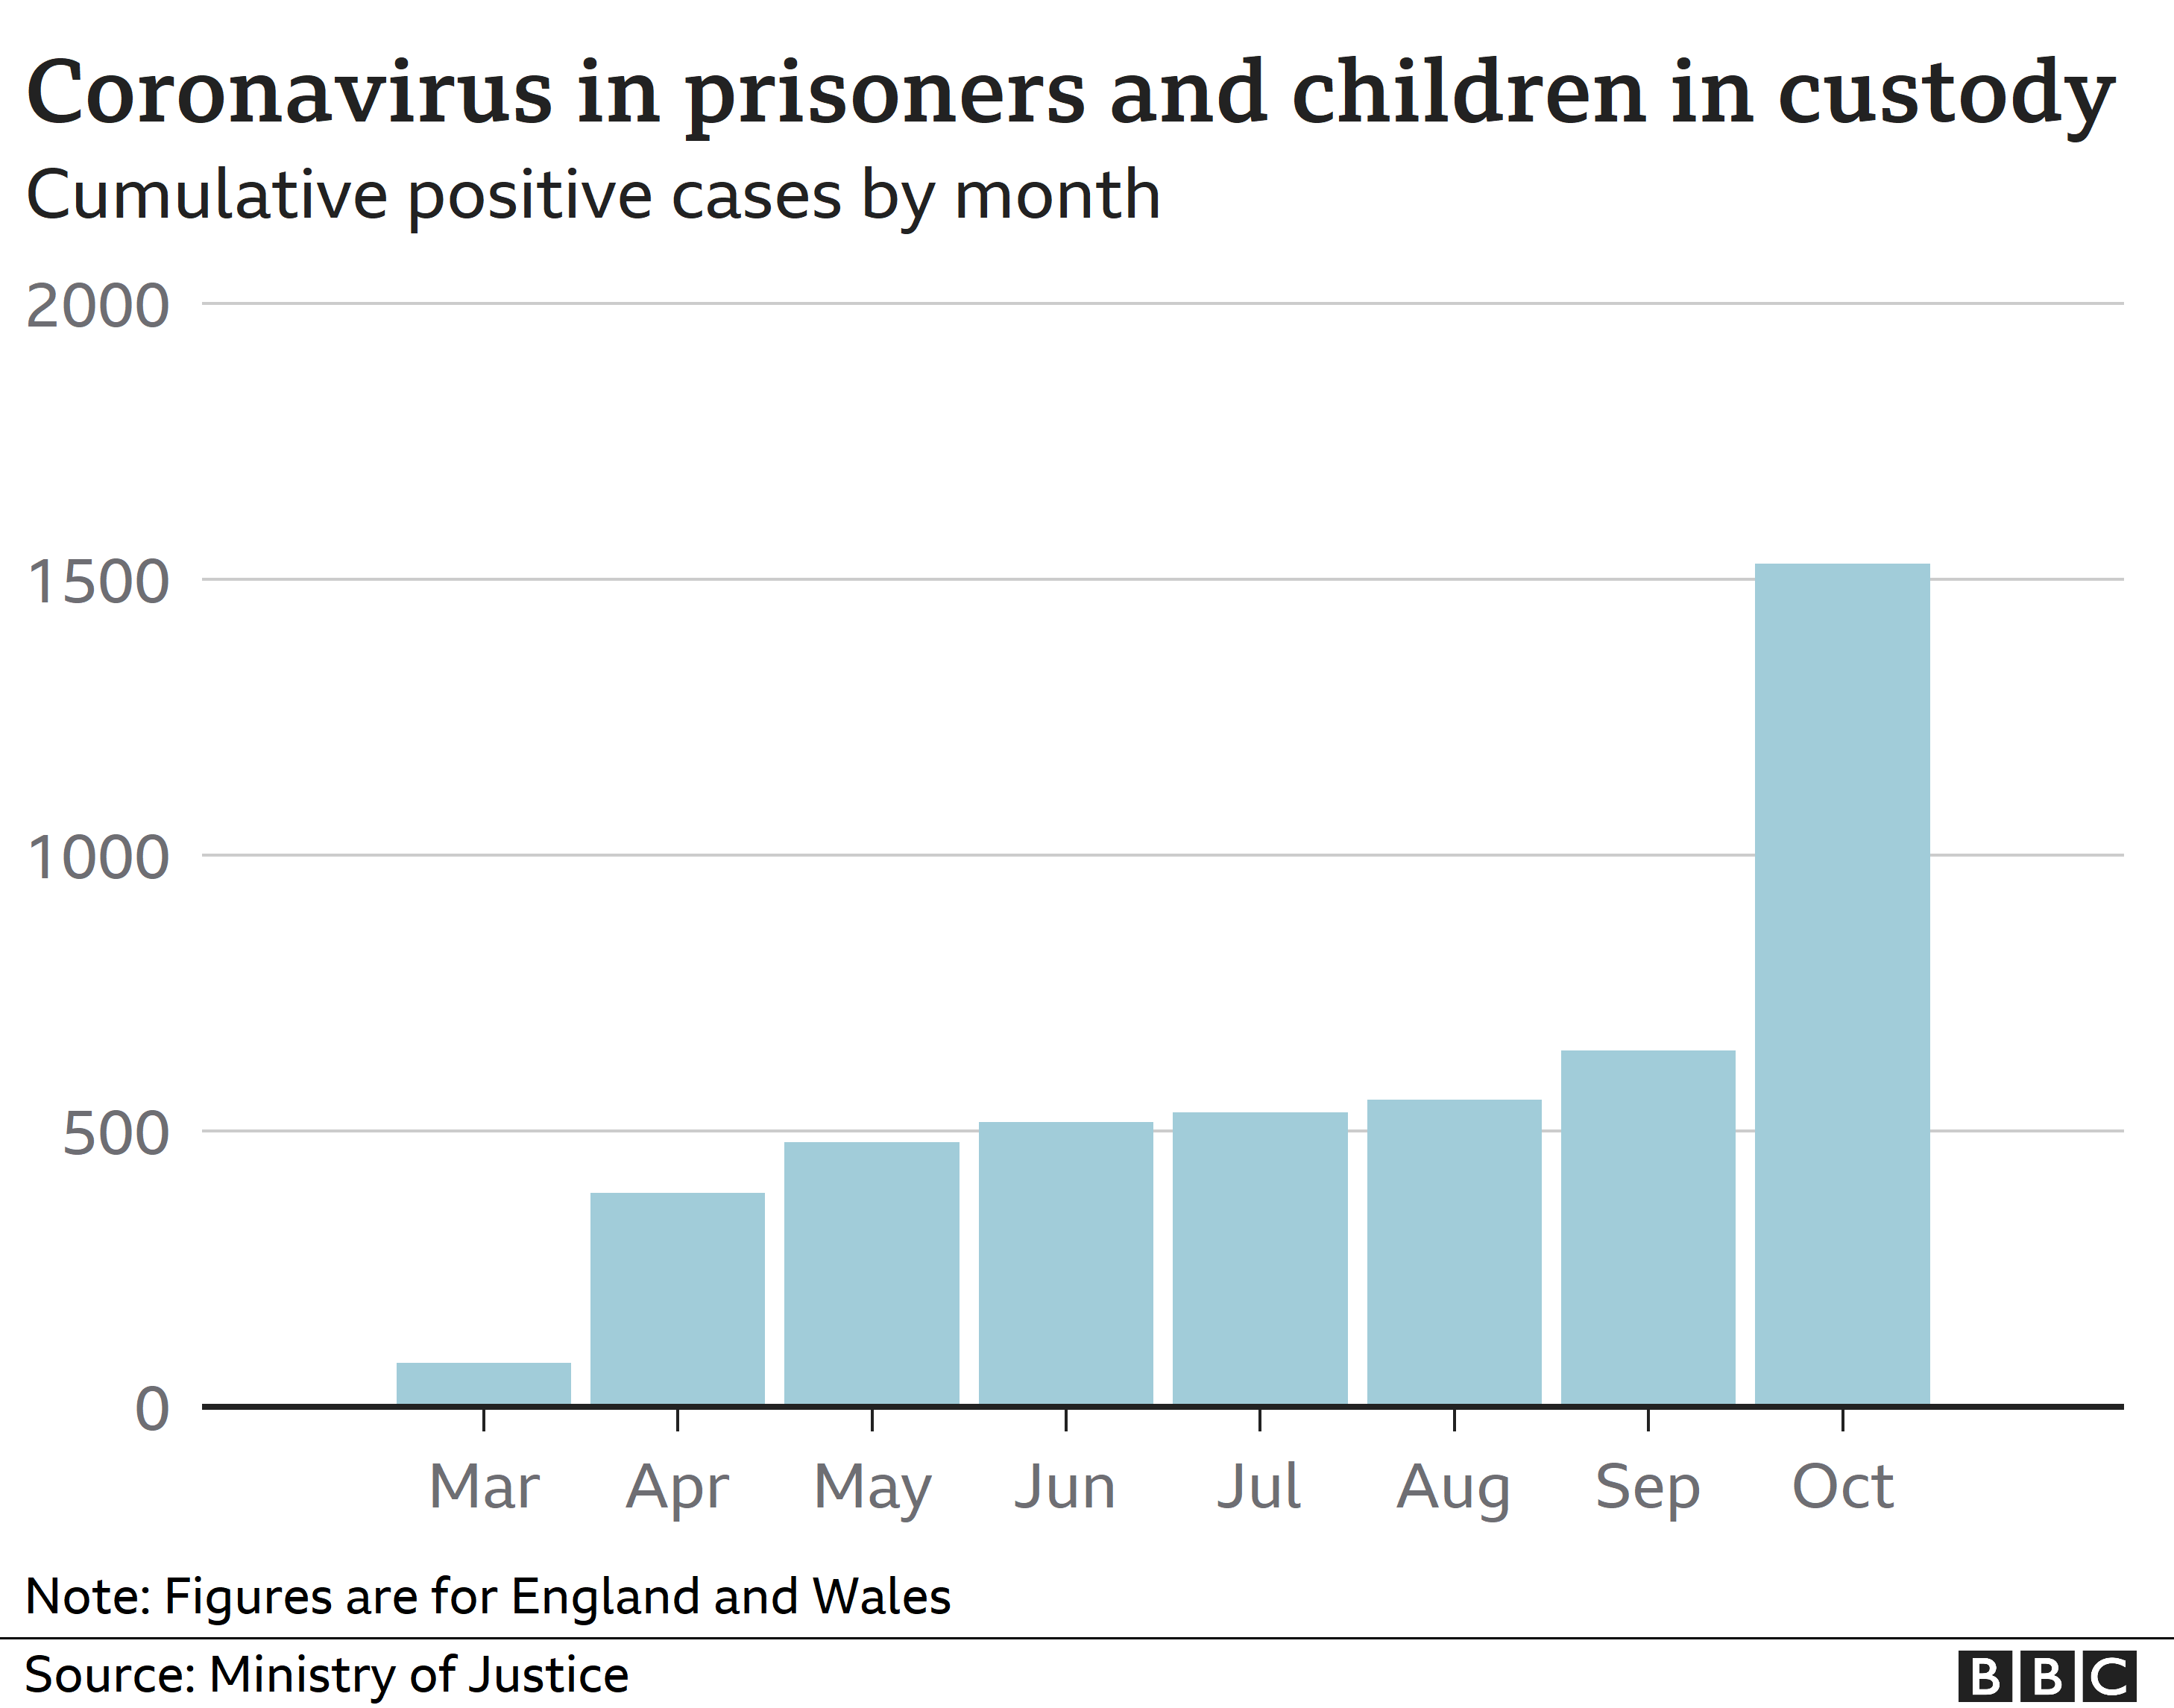 Chart showing cumulative coronavirus cases in prisoners across England and Wales